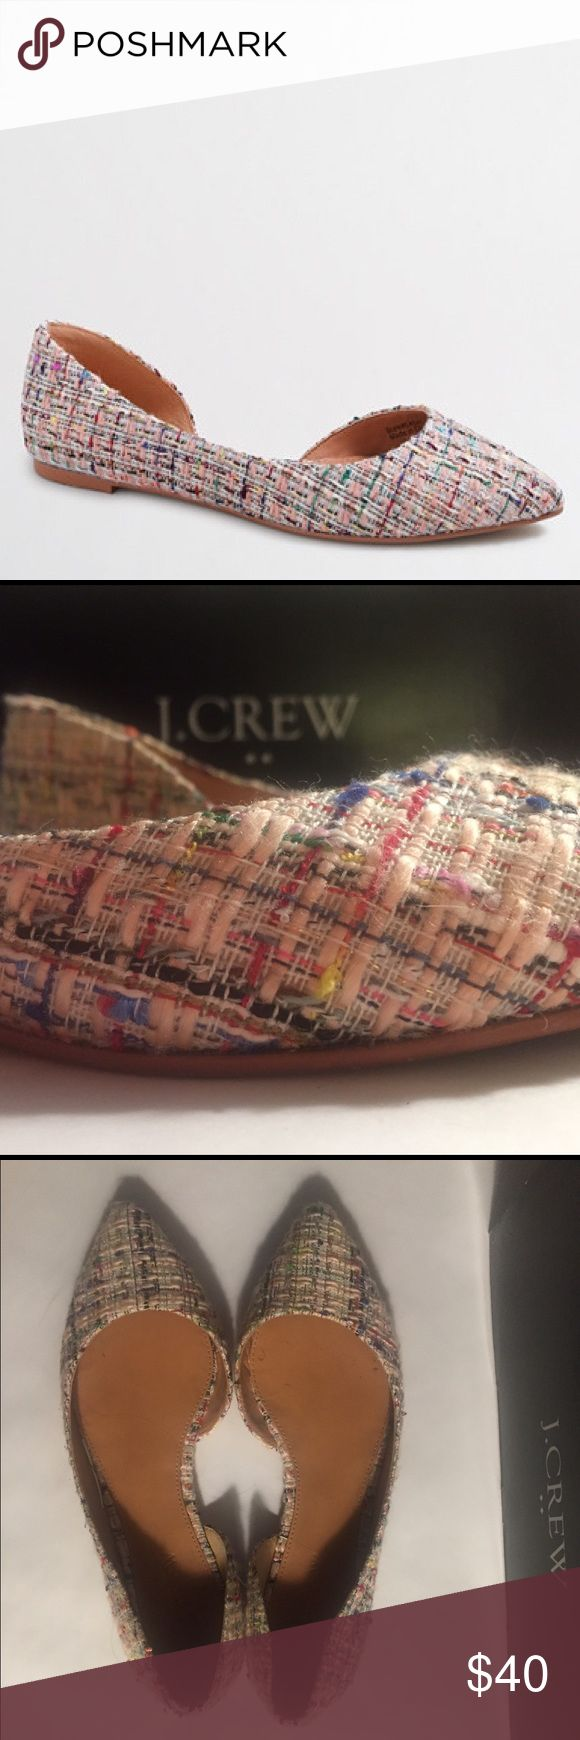 J. Crew Mixed Tweed Classic D'Orsay Flats Spring cleaning clear out!   J. Crew Factory d'orsay flats   Size: 7   Tweed upper   Leather sole   Only worn a handful of times, in like new condition   Comes in original box! J. Crew Shoes Flats & Loafers